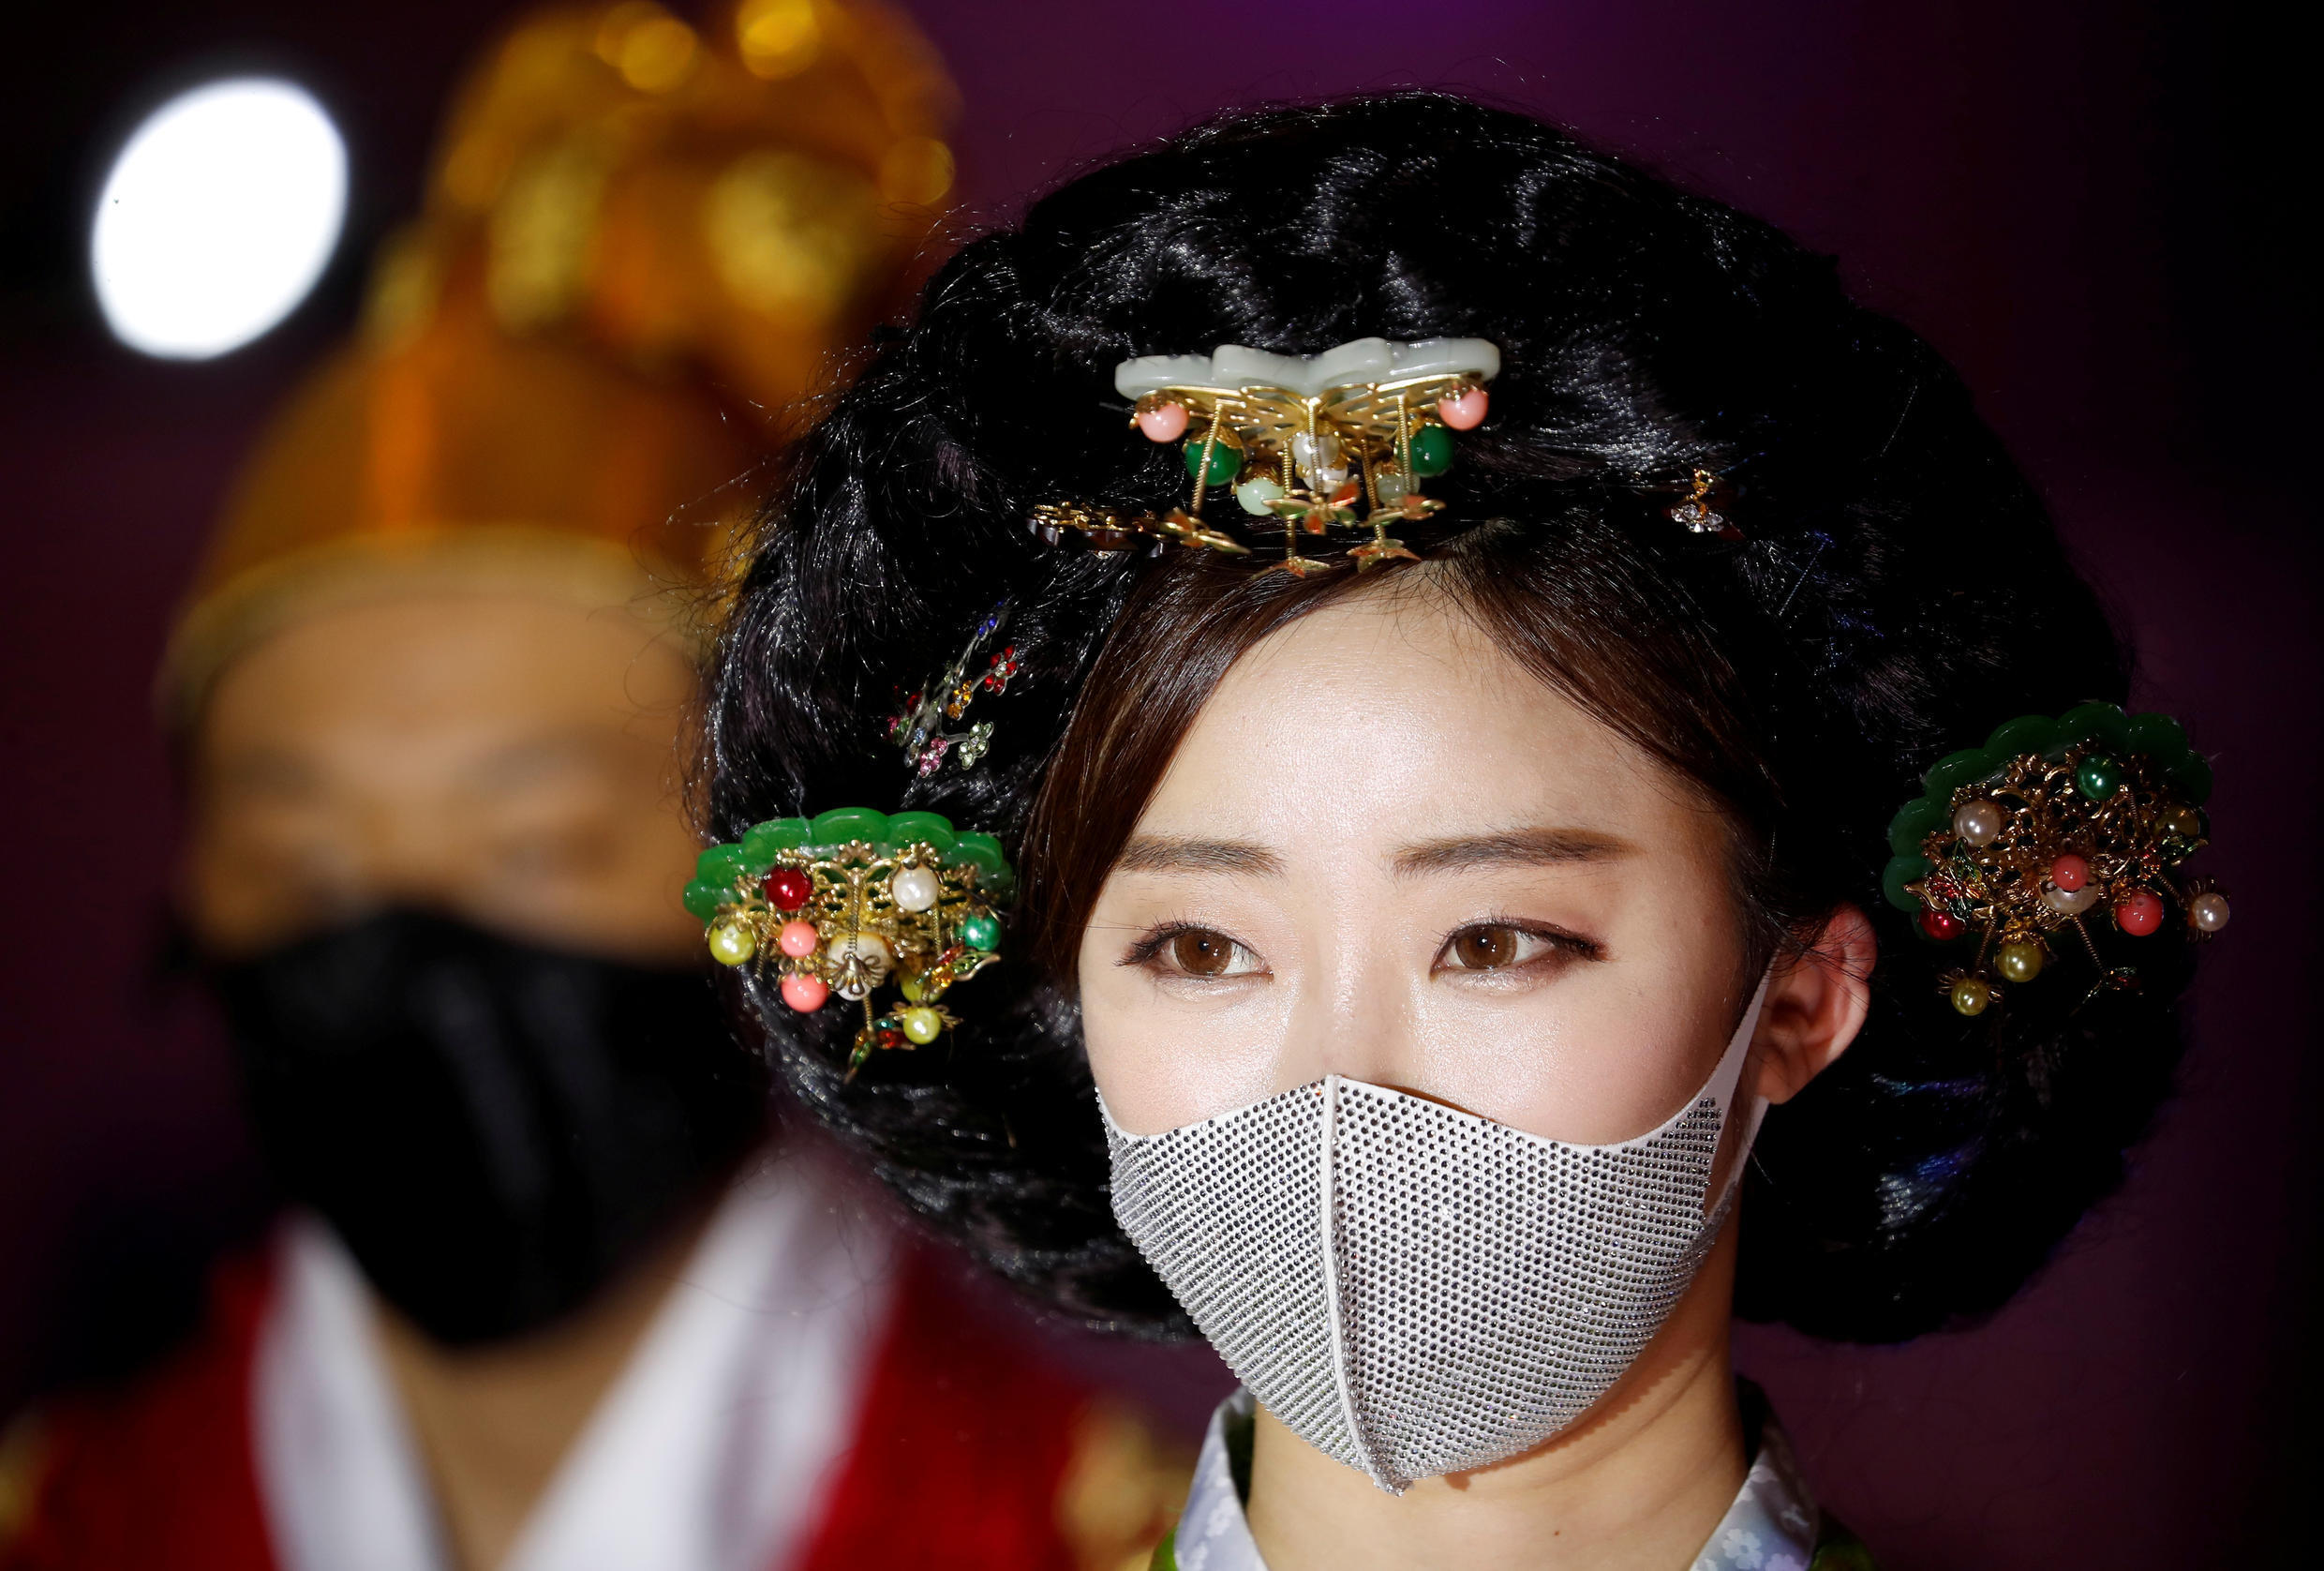 Models present creations during a fashion show, wearing masks as a measure to avoid the spread of the coronavirus disease (Covid-19), in Seoul, South Korea July 24, 2020.